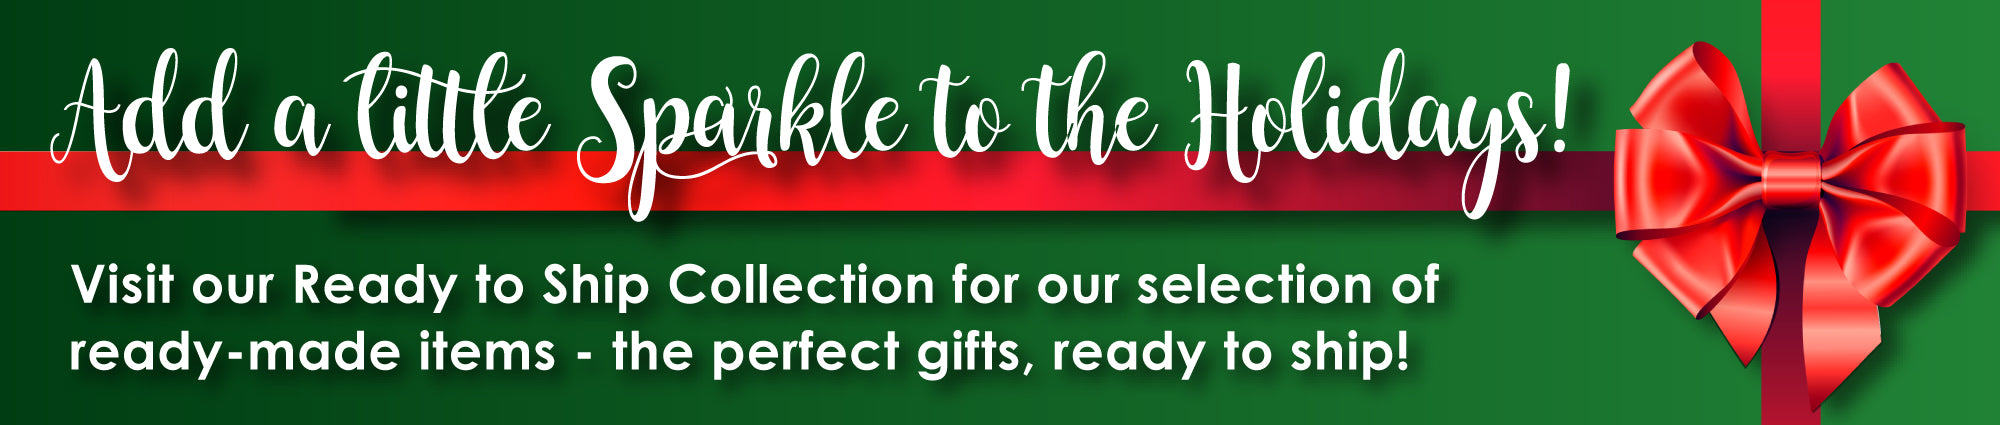 Perfect Gifts, Ready to Ship!